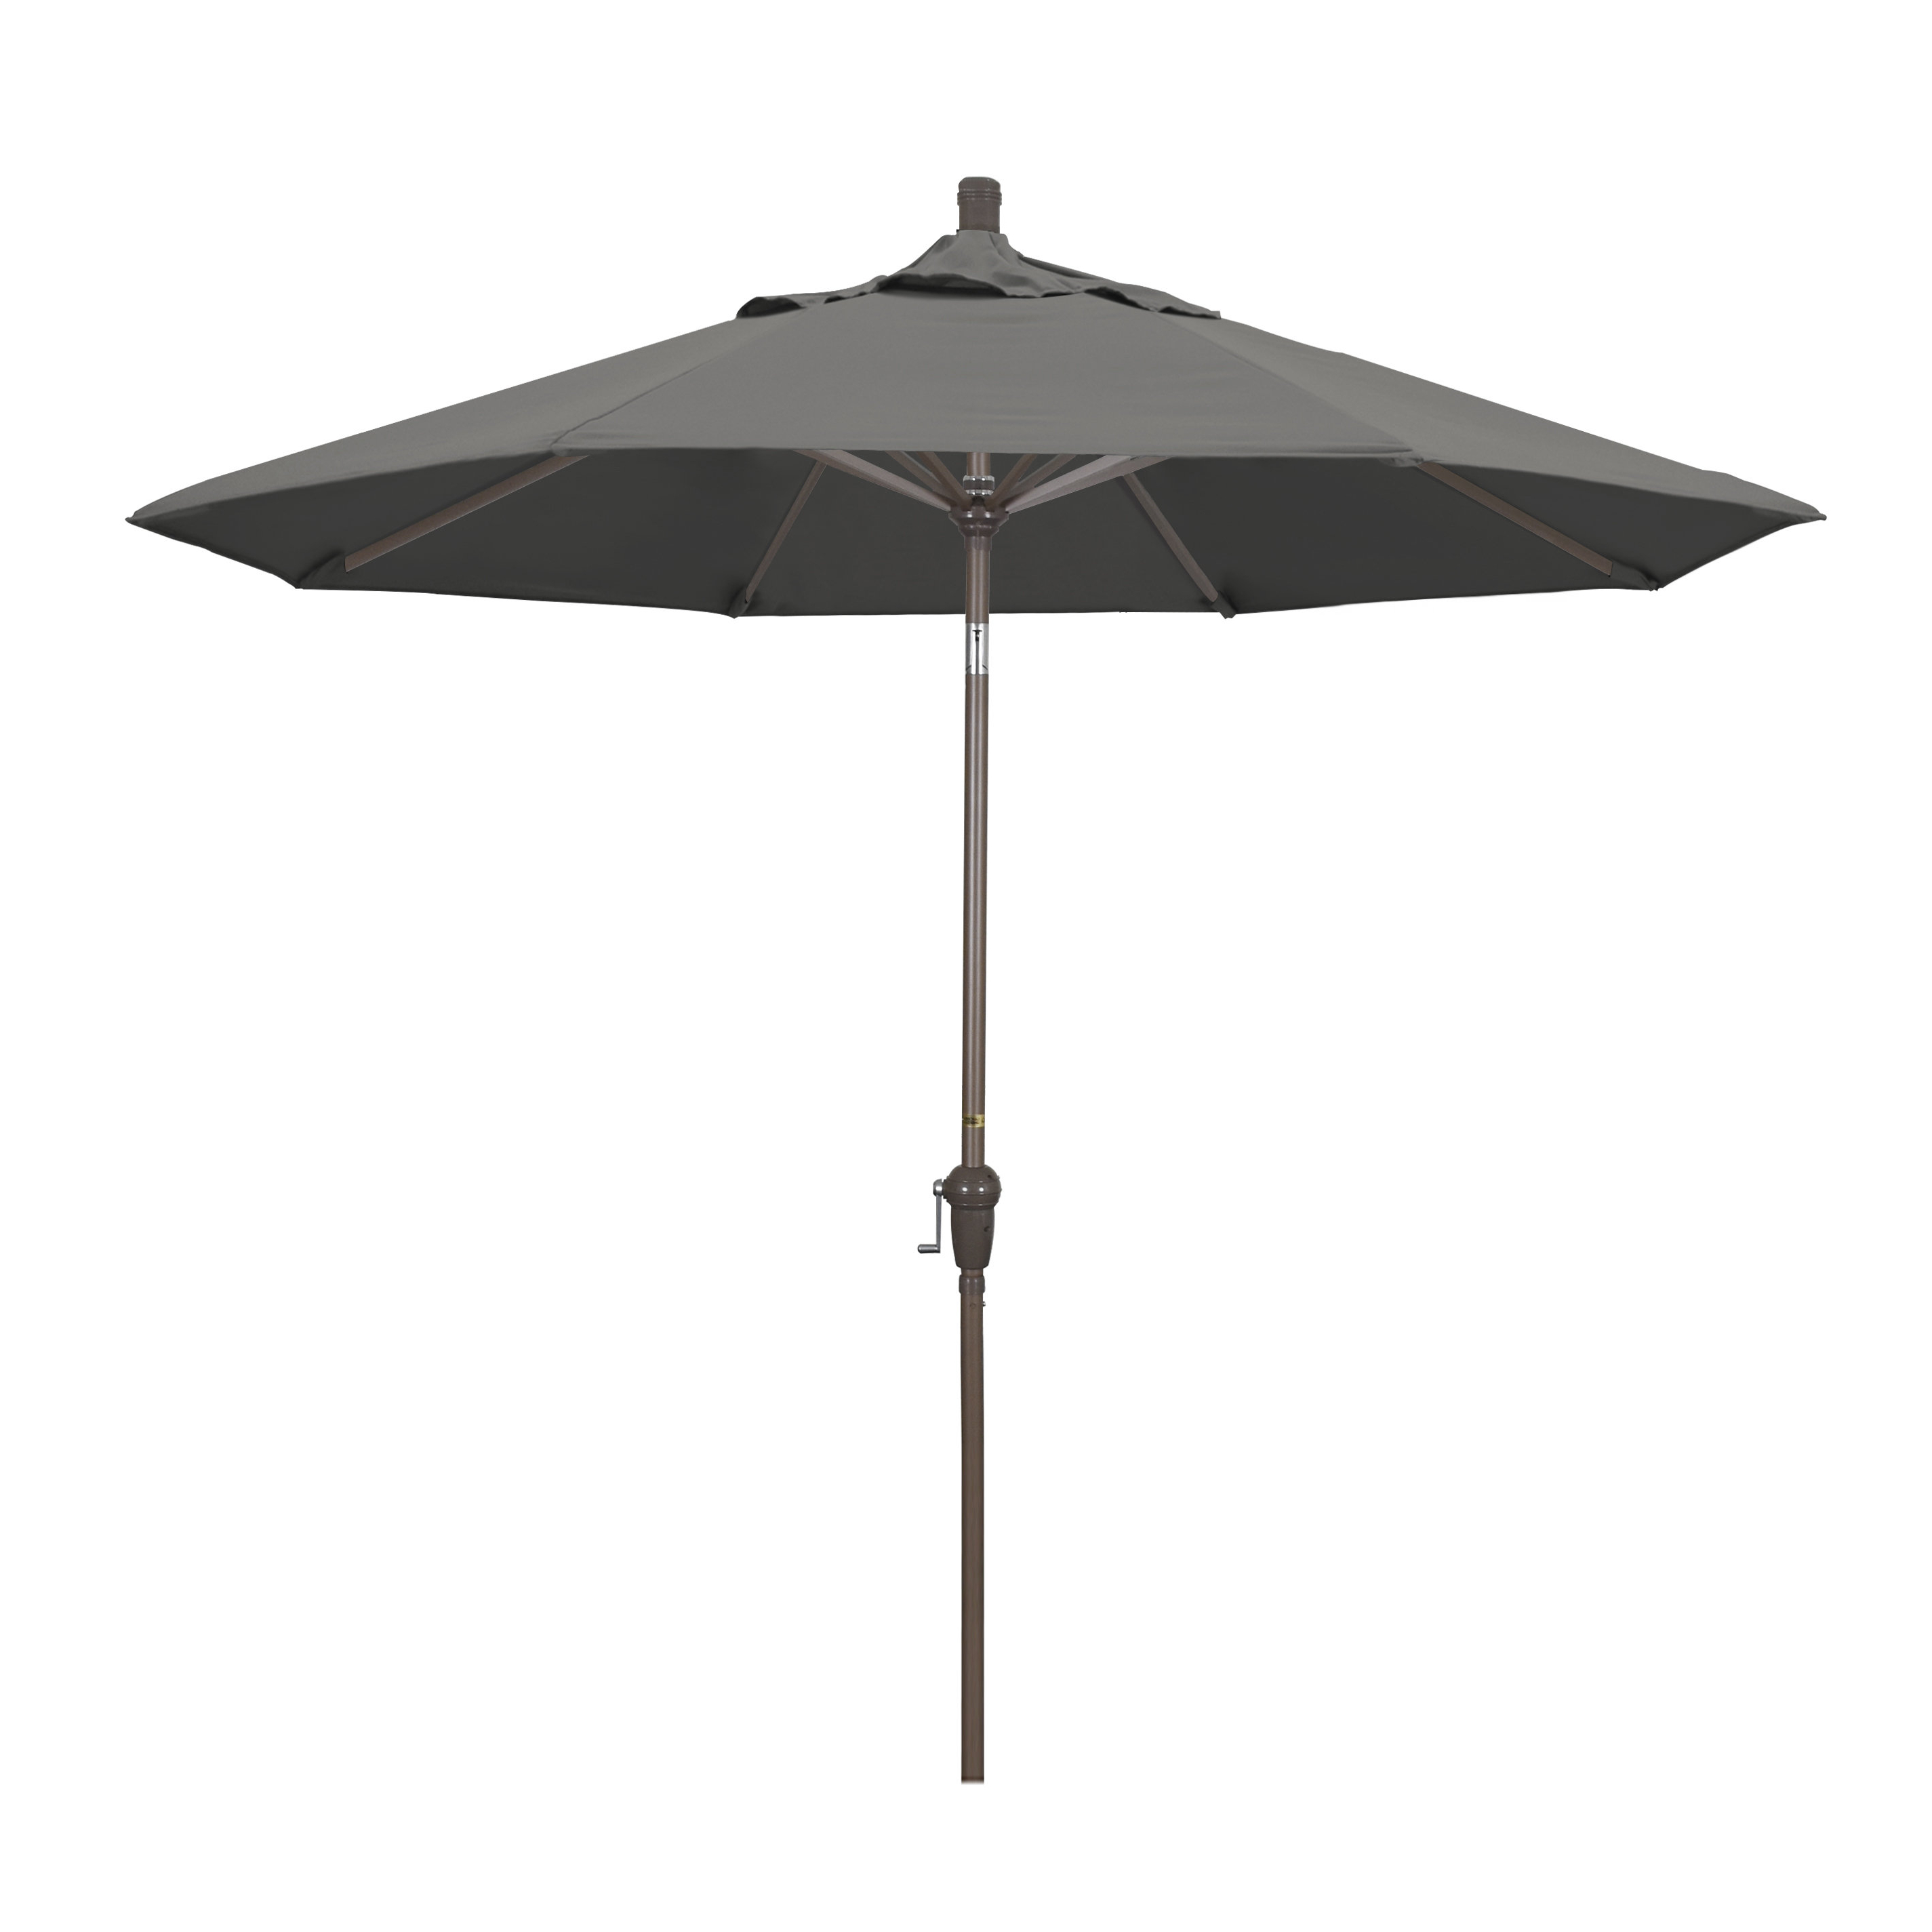 Popular Mullaney 9' Market Sunbrella Umbrella With Crowland Market Sunbrella Umbrellas (View 15 of 20)